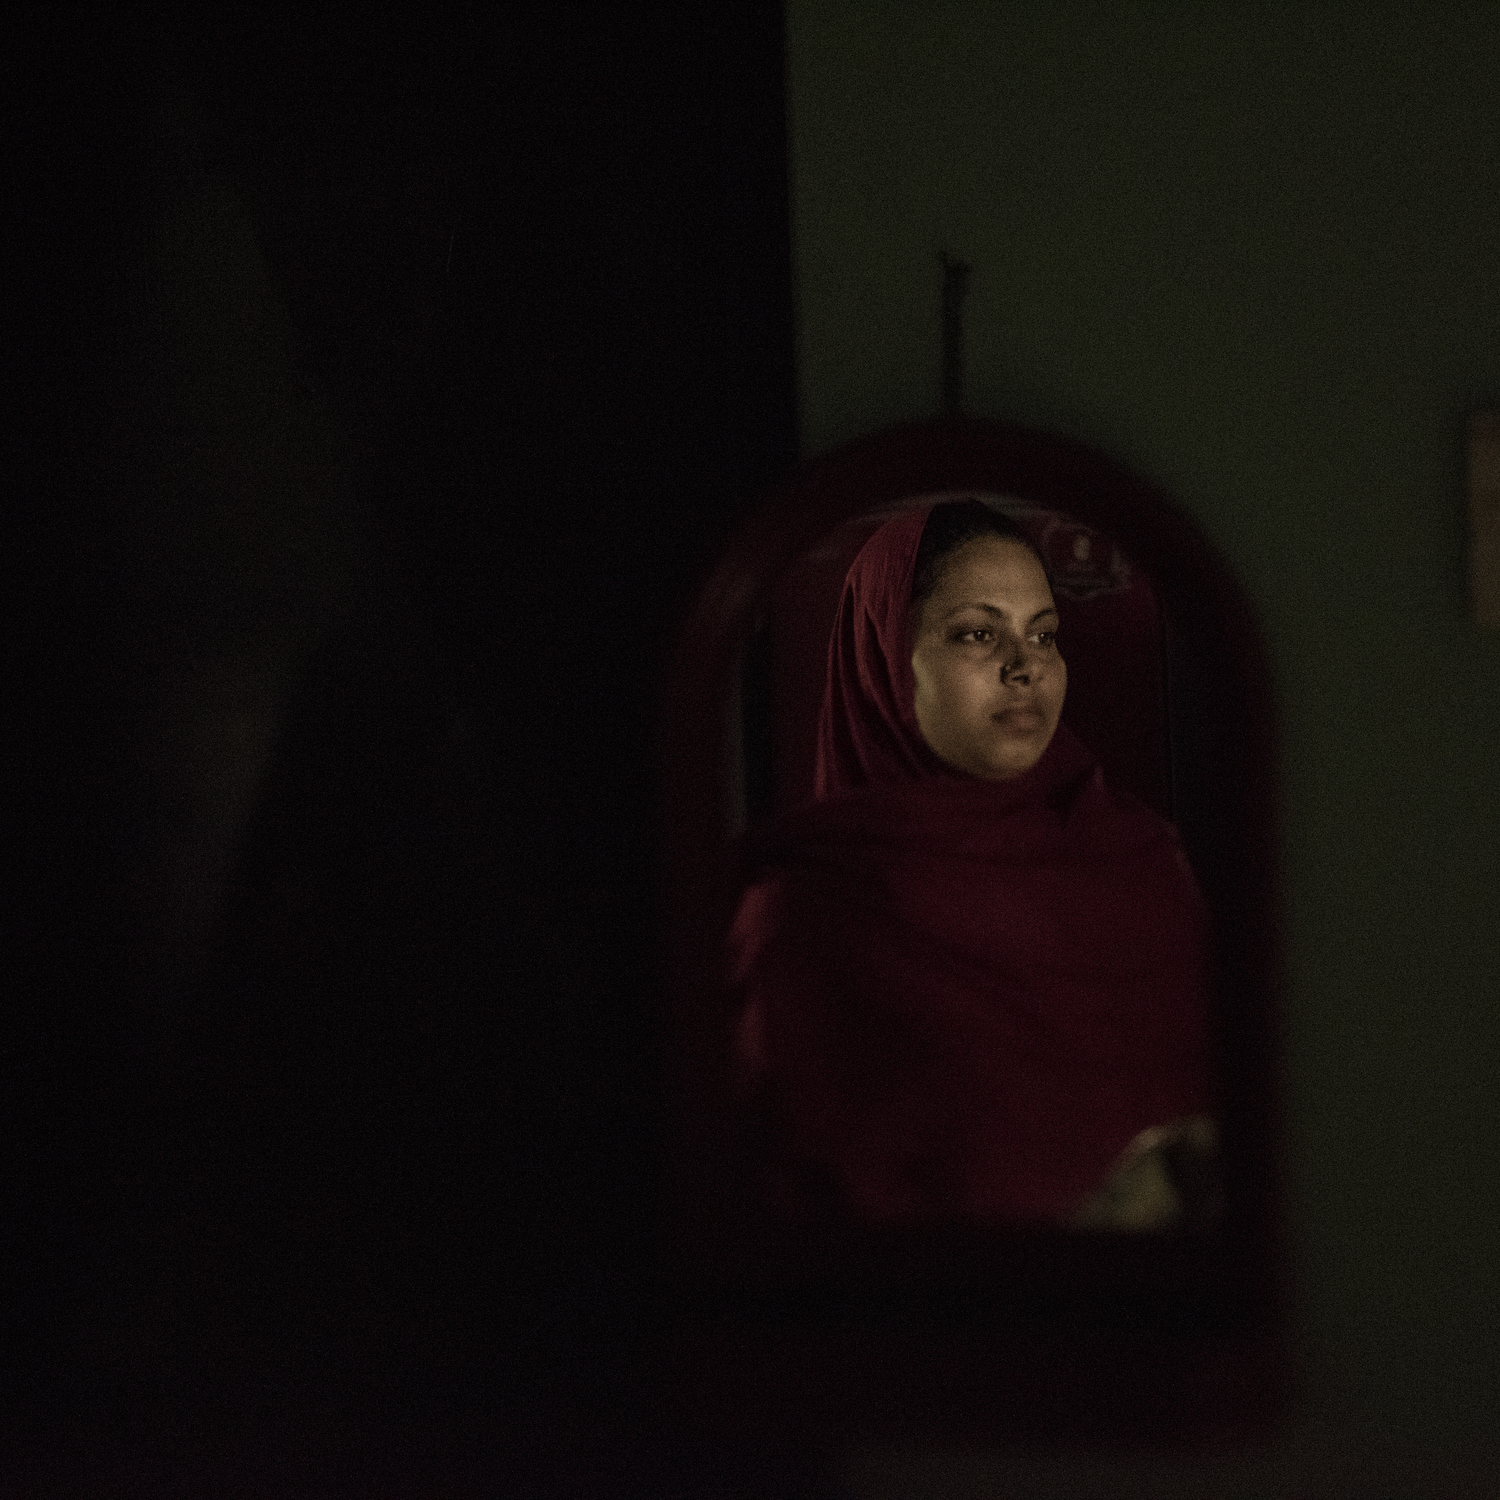 Nazma still sometimes relives the horror through which she had to go in her nightmares